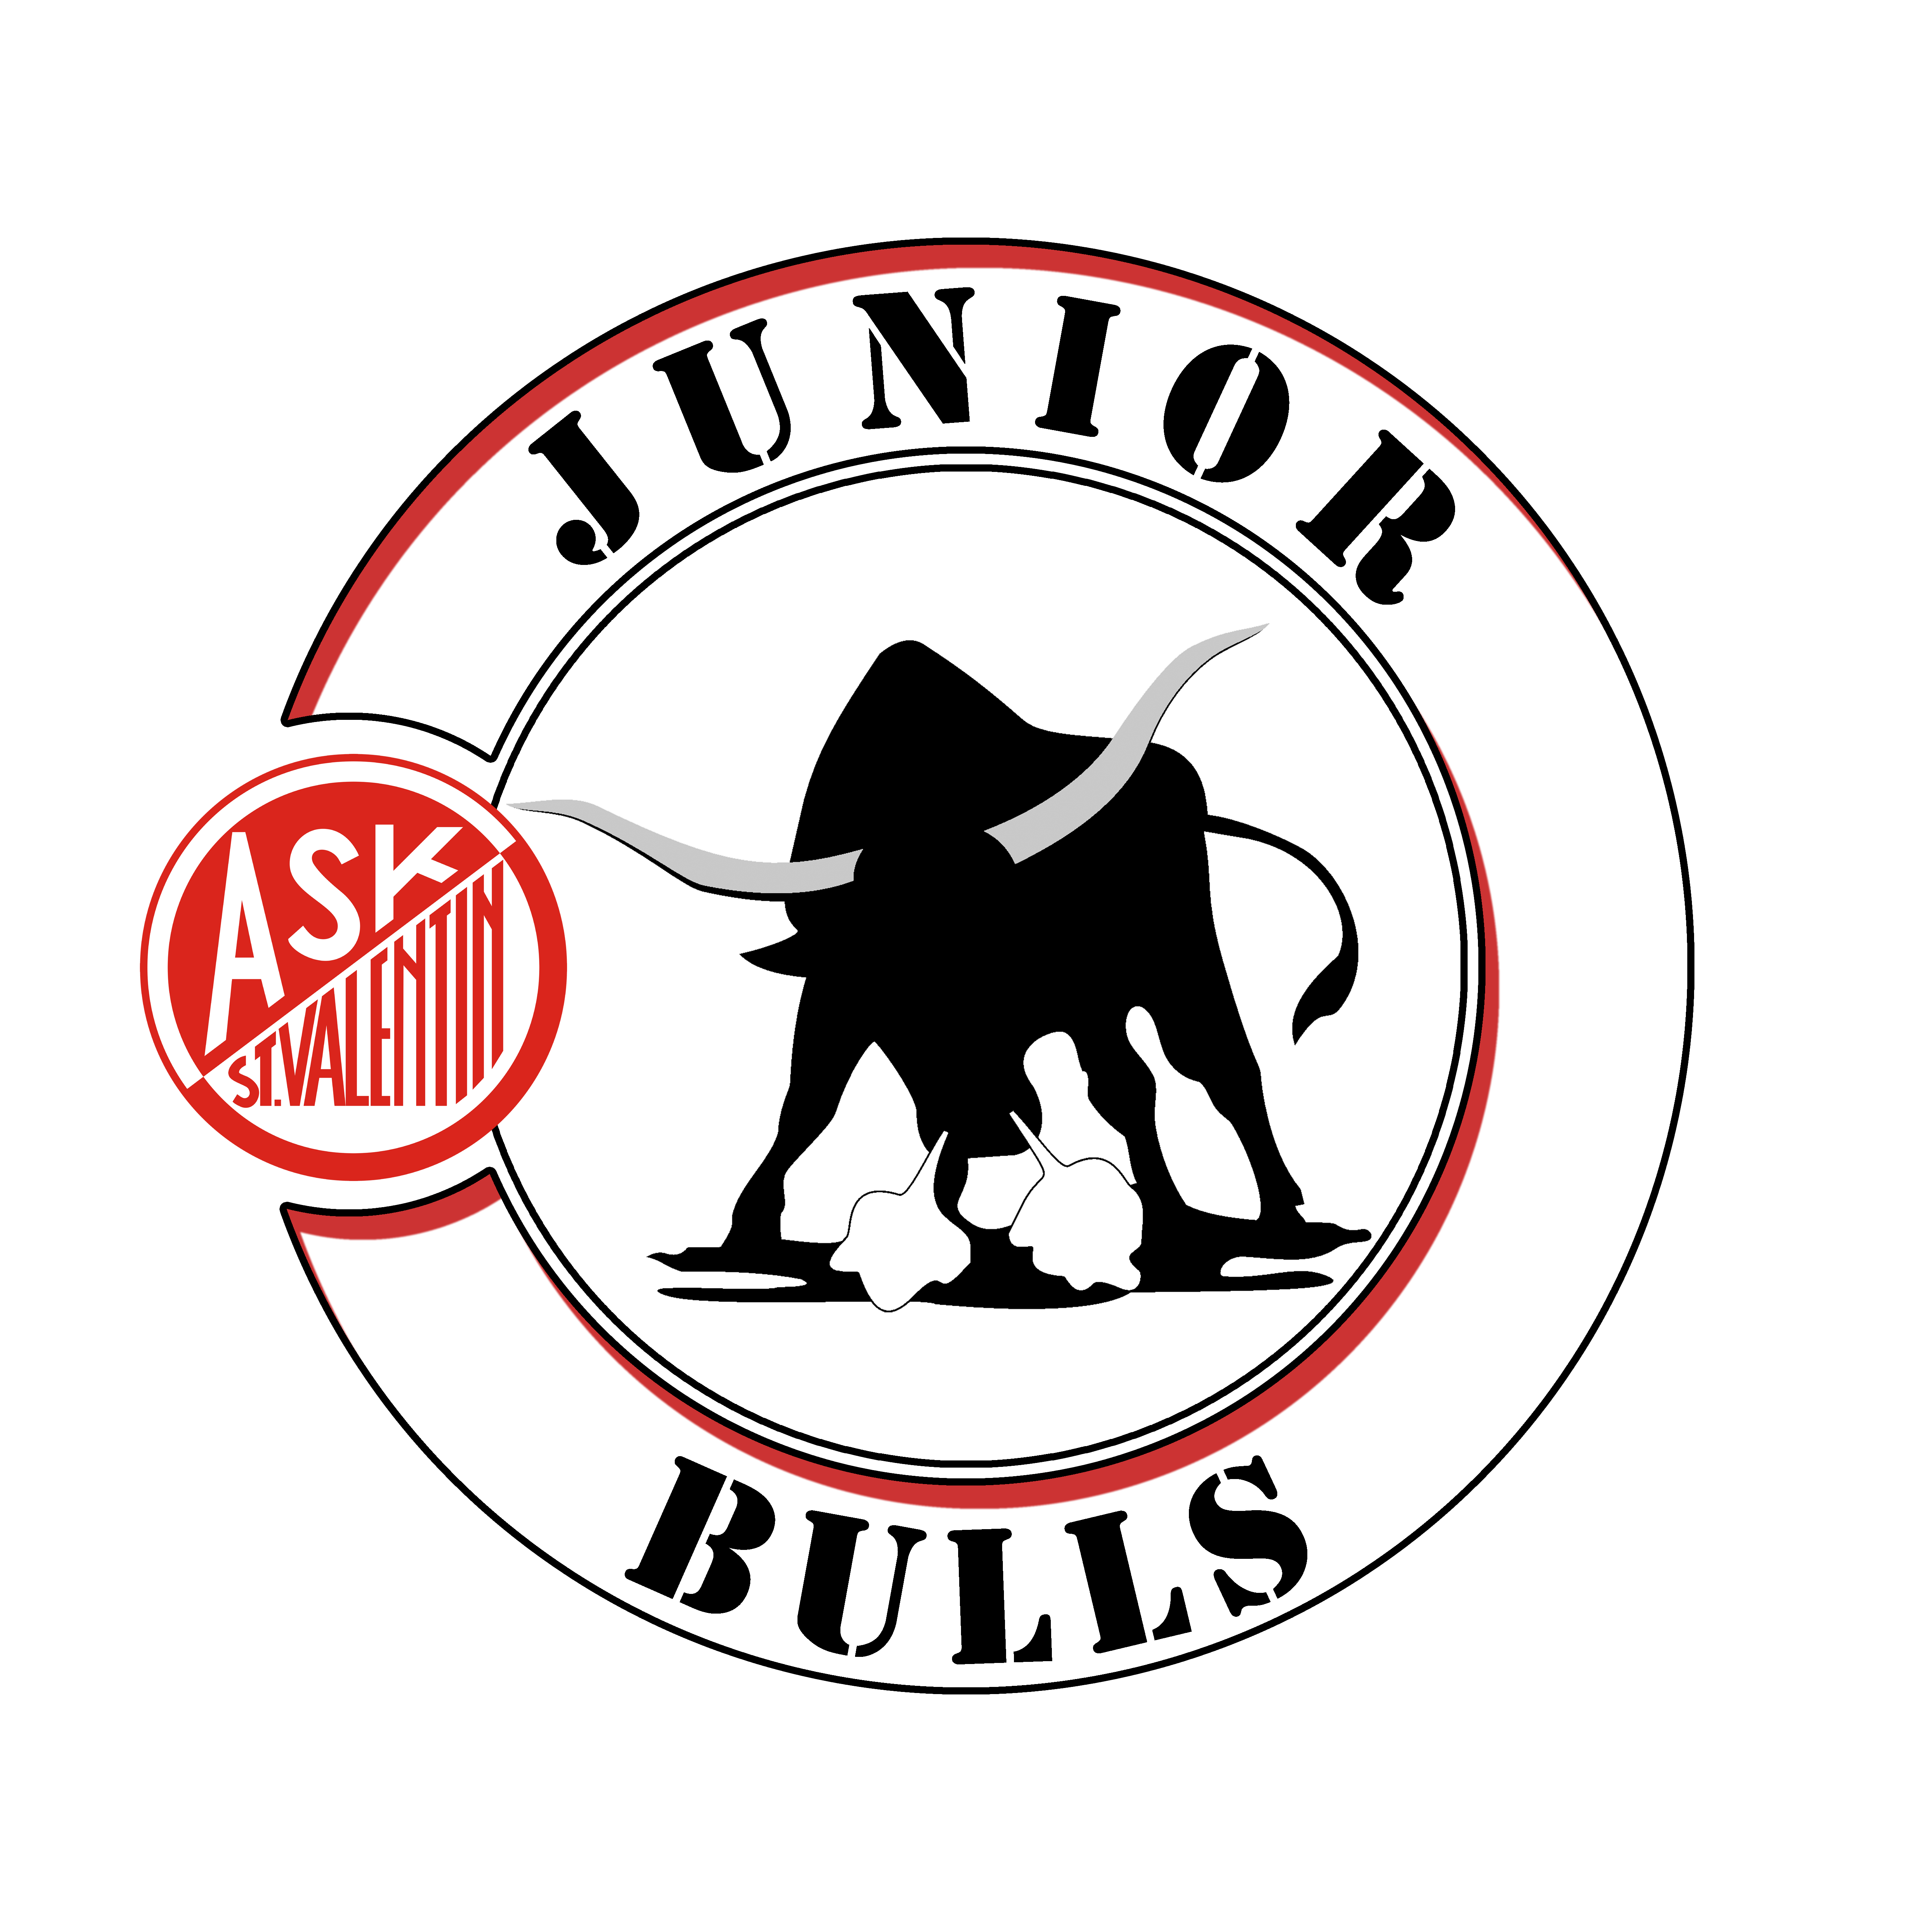 JUNIOR BULLS LOGO